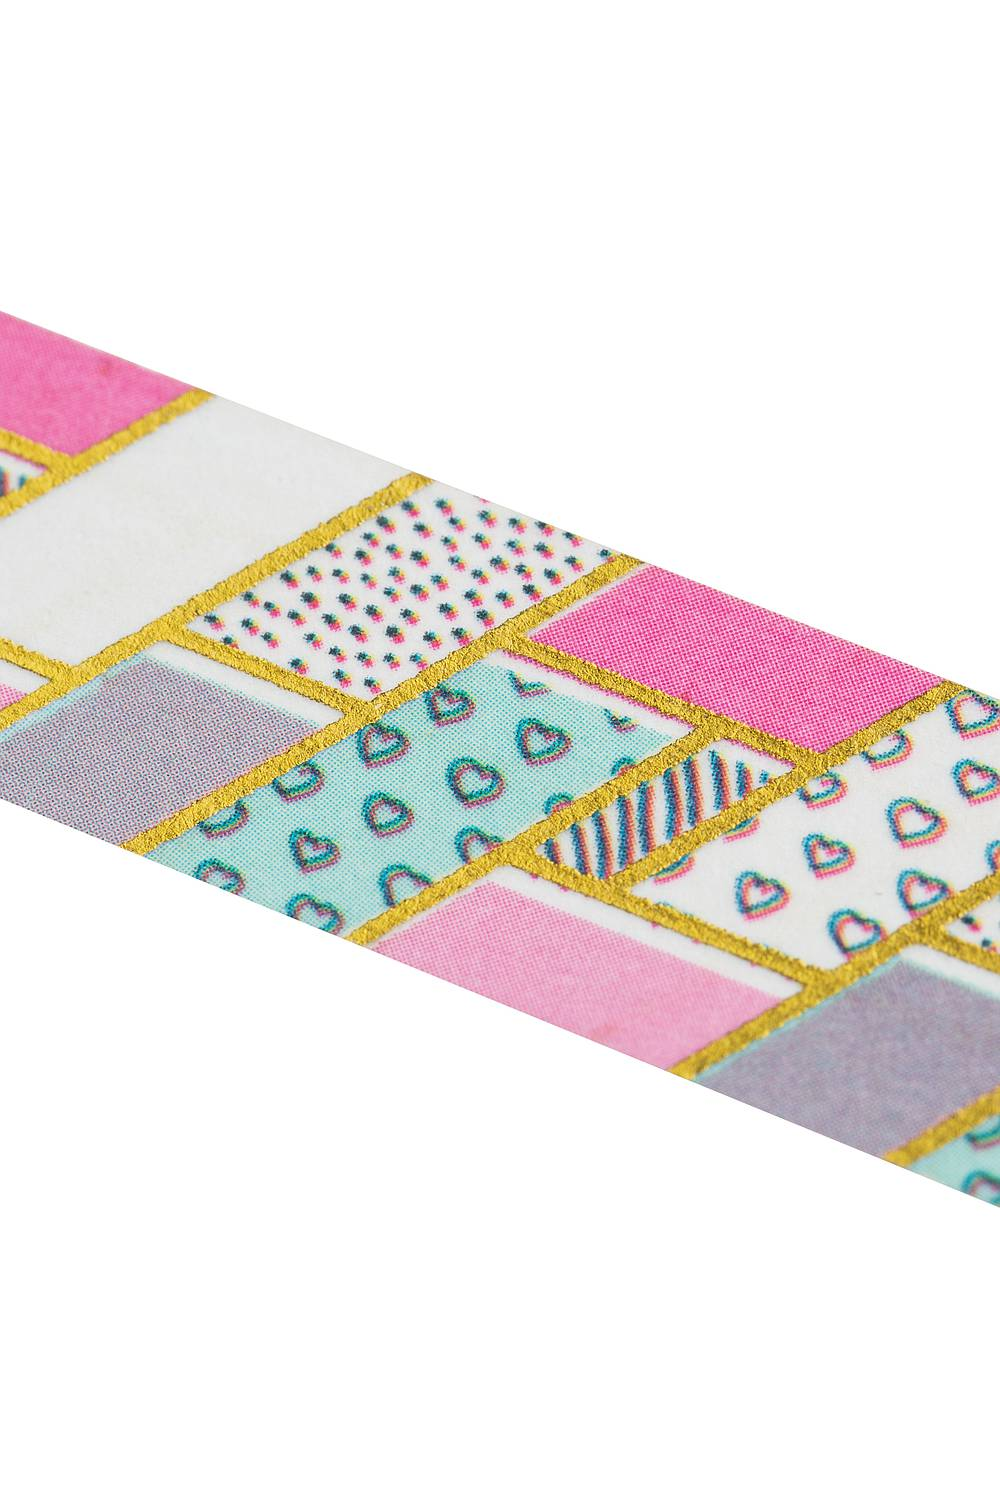 Washi Tape PATCHWORK gold